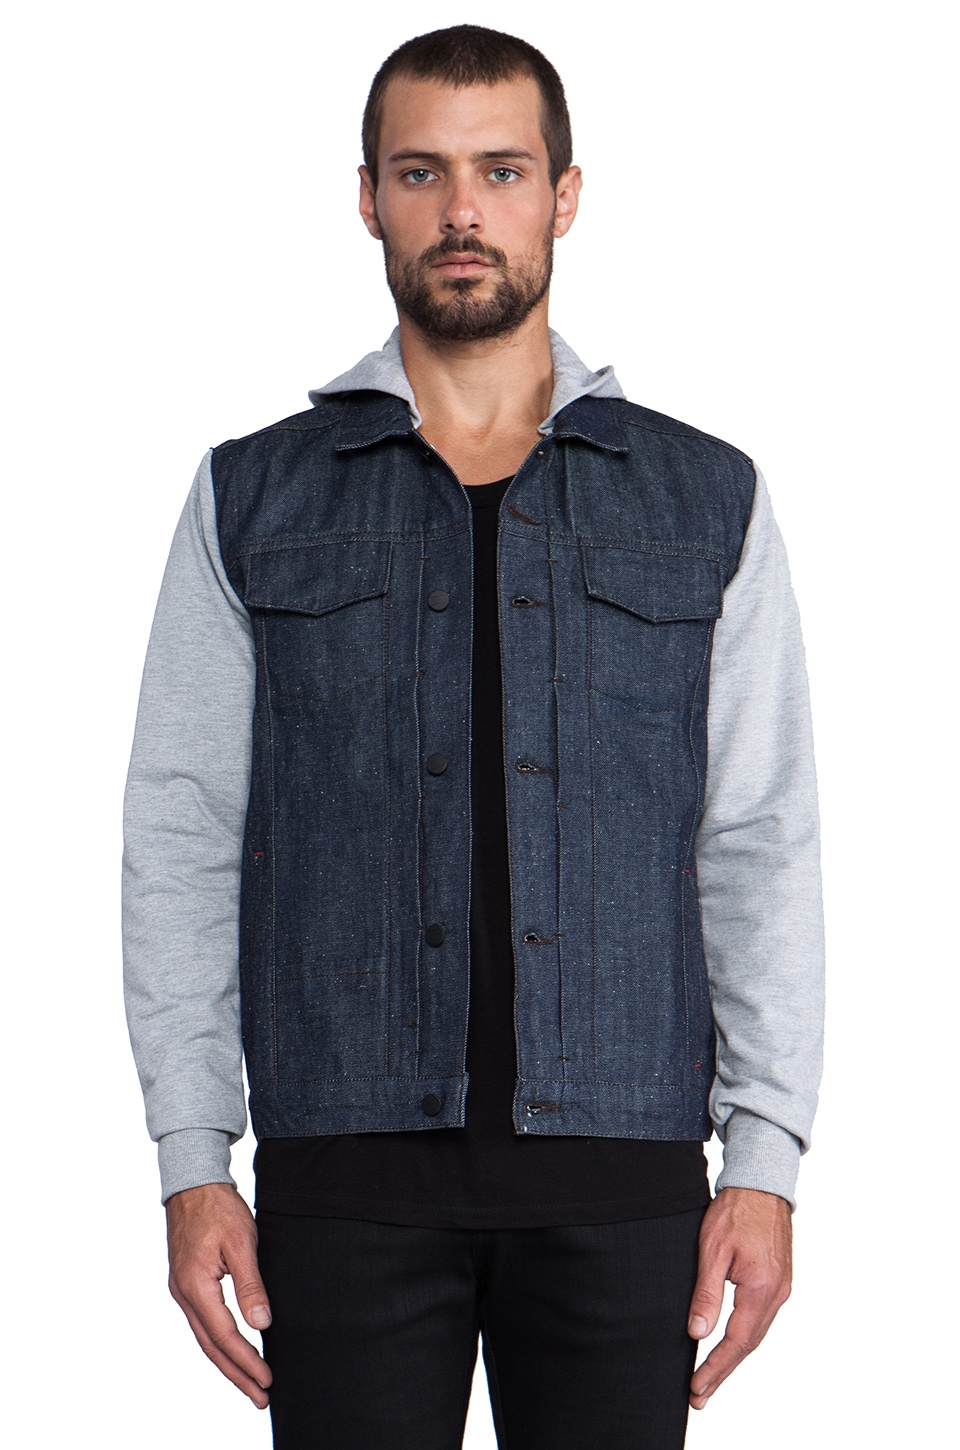 COMUNE Jay Heather Grey Hoodie Denim Jacket in Indigo